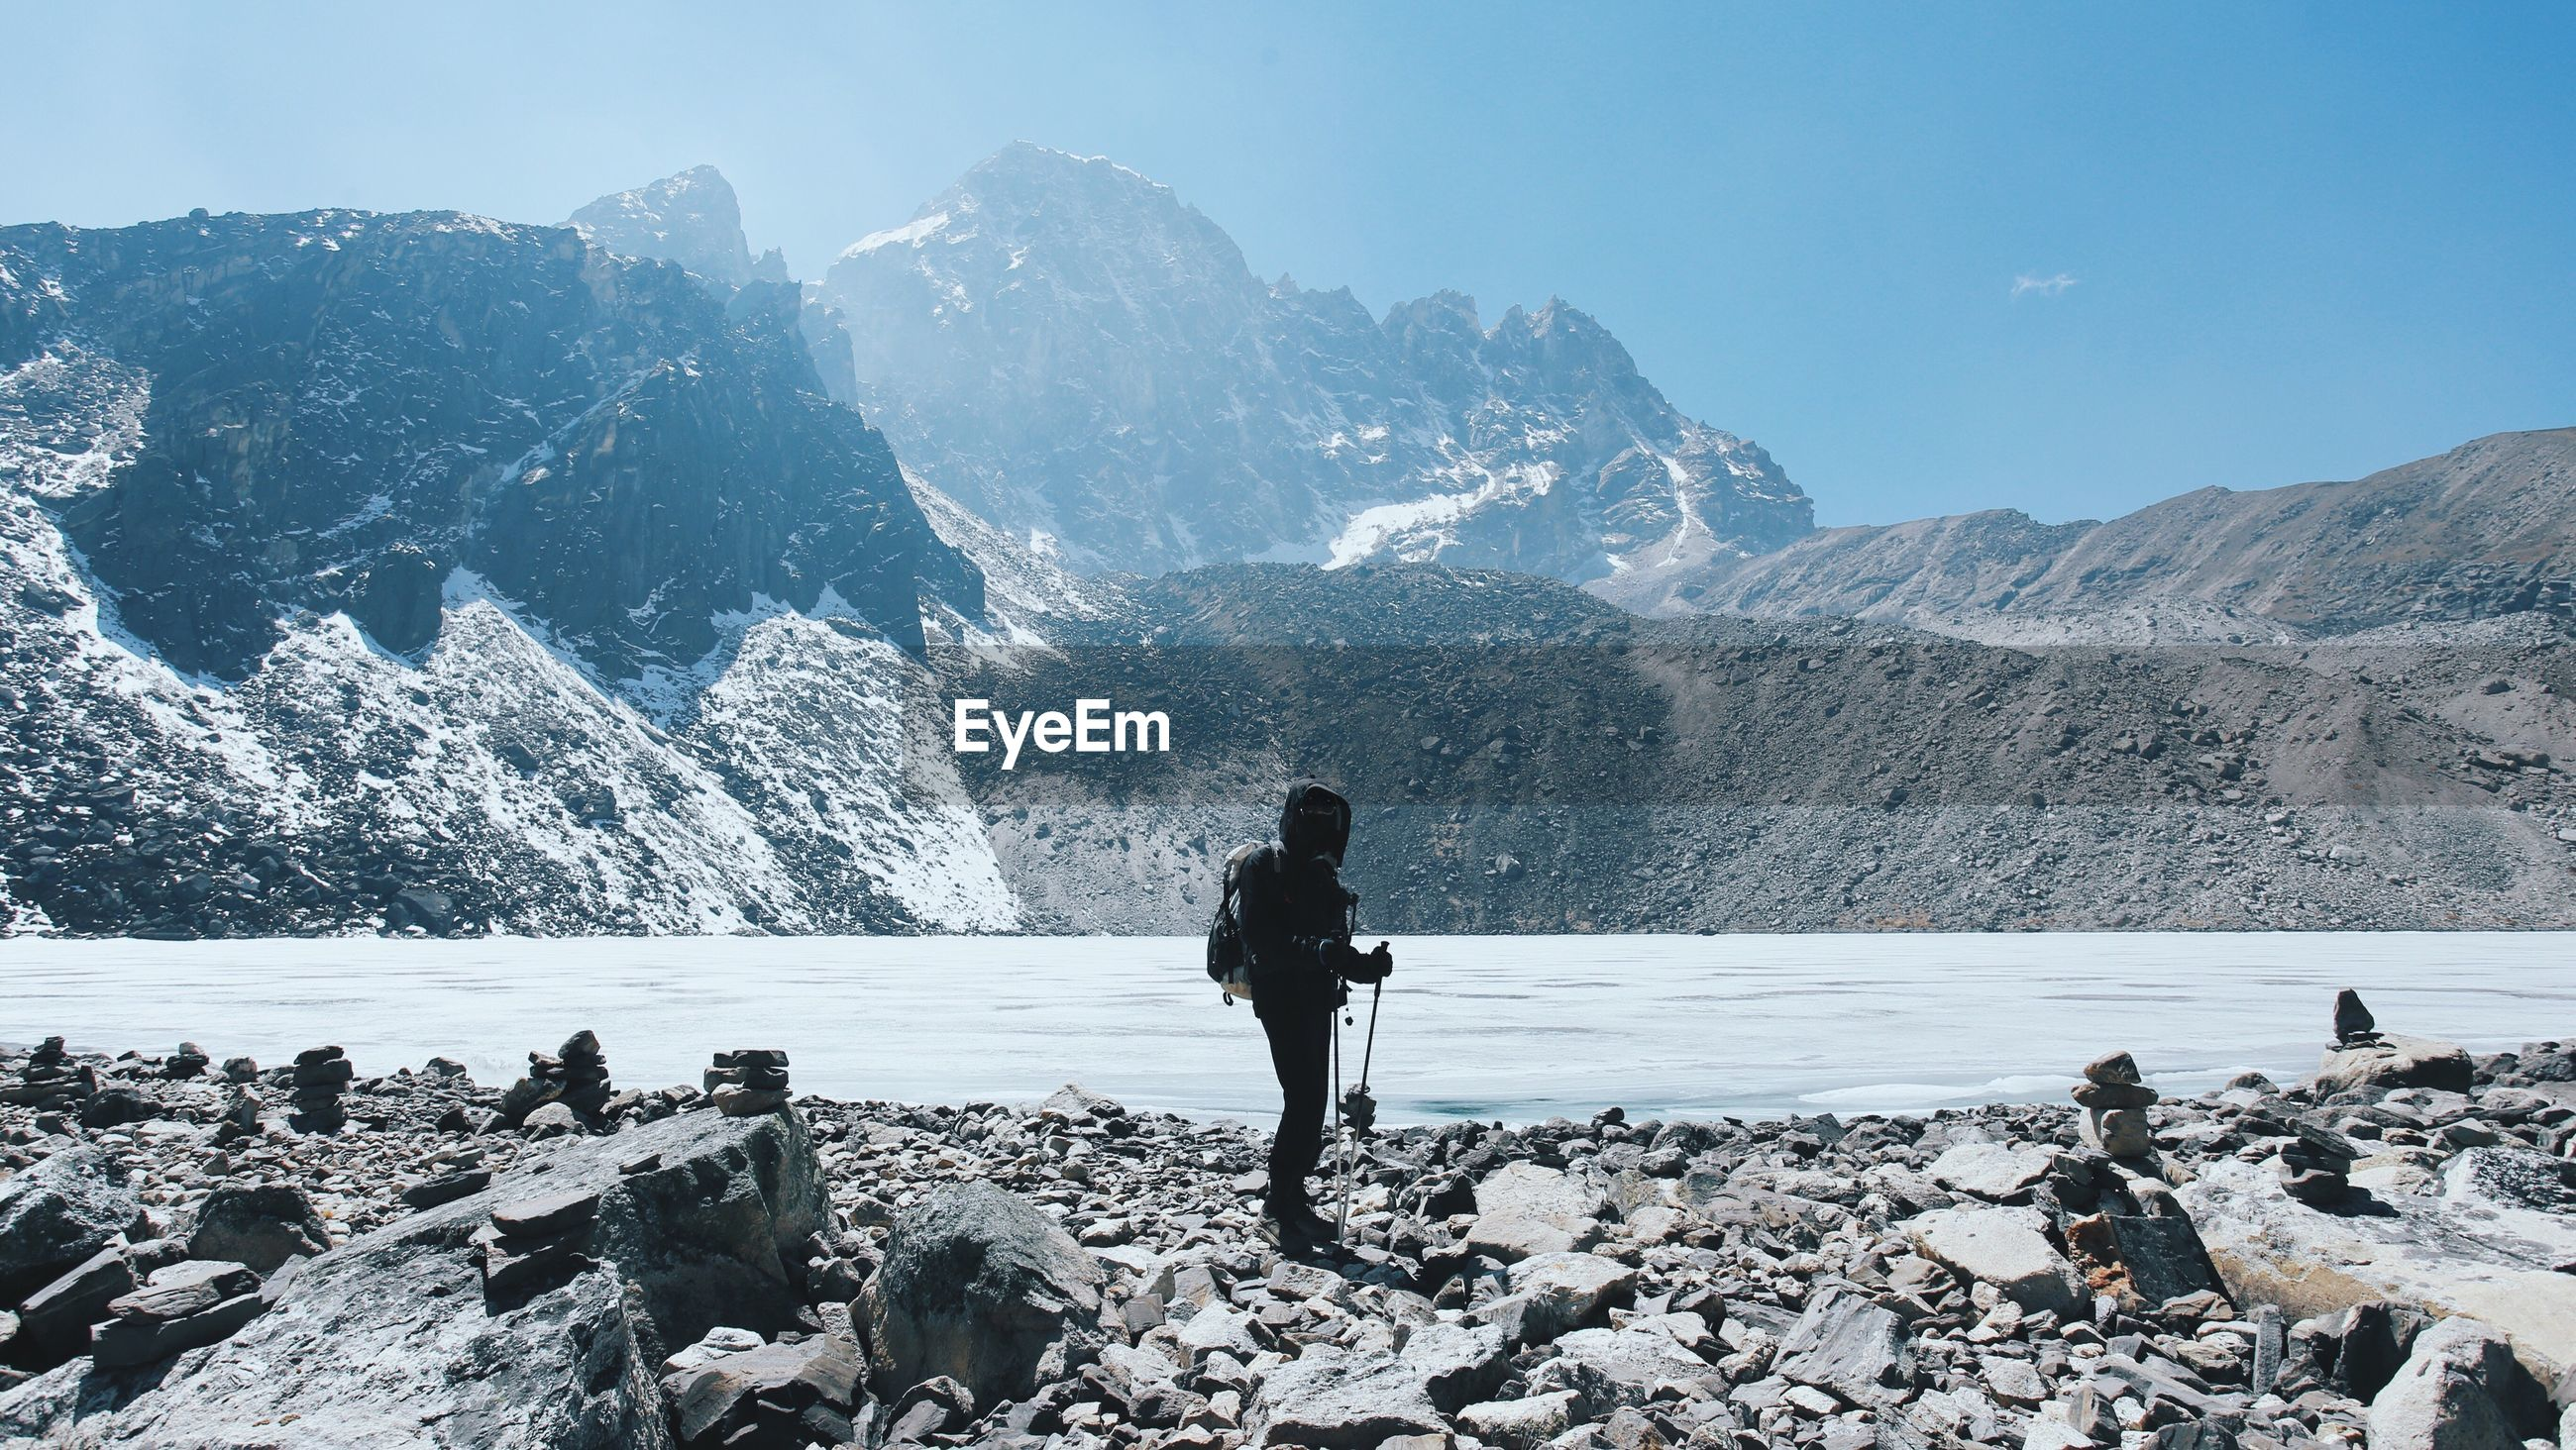 Person standing by gokyo lake against rocky mountains on sunny day